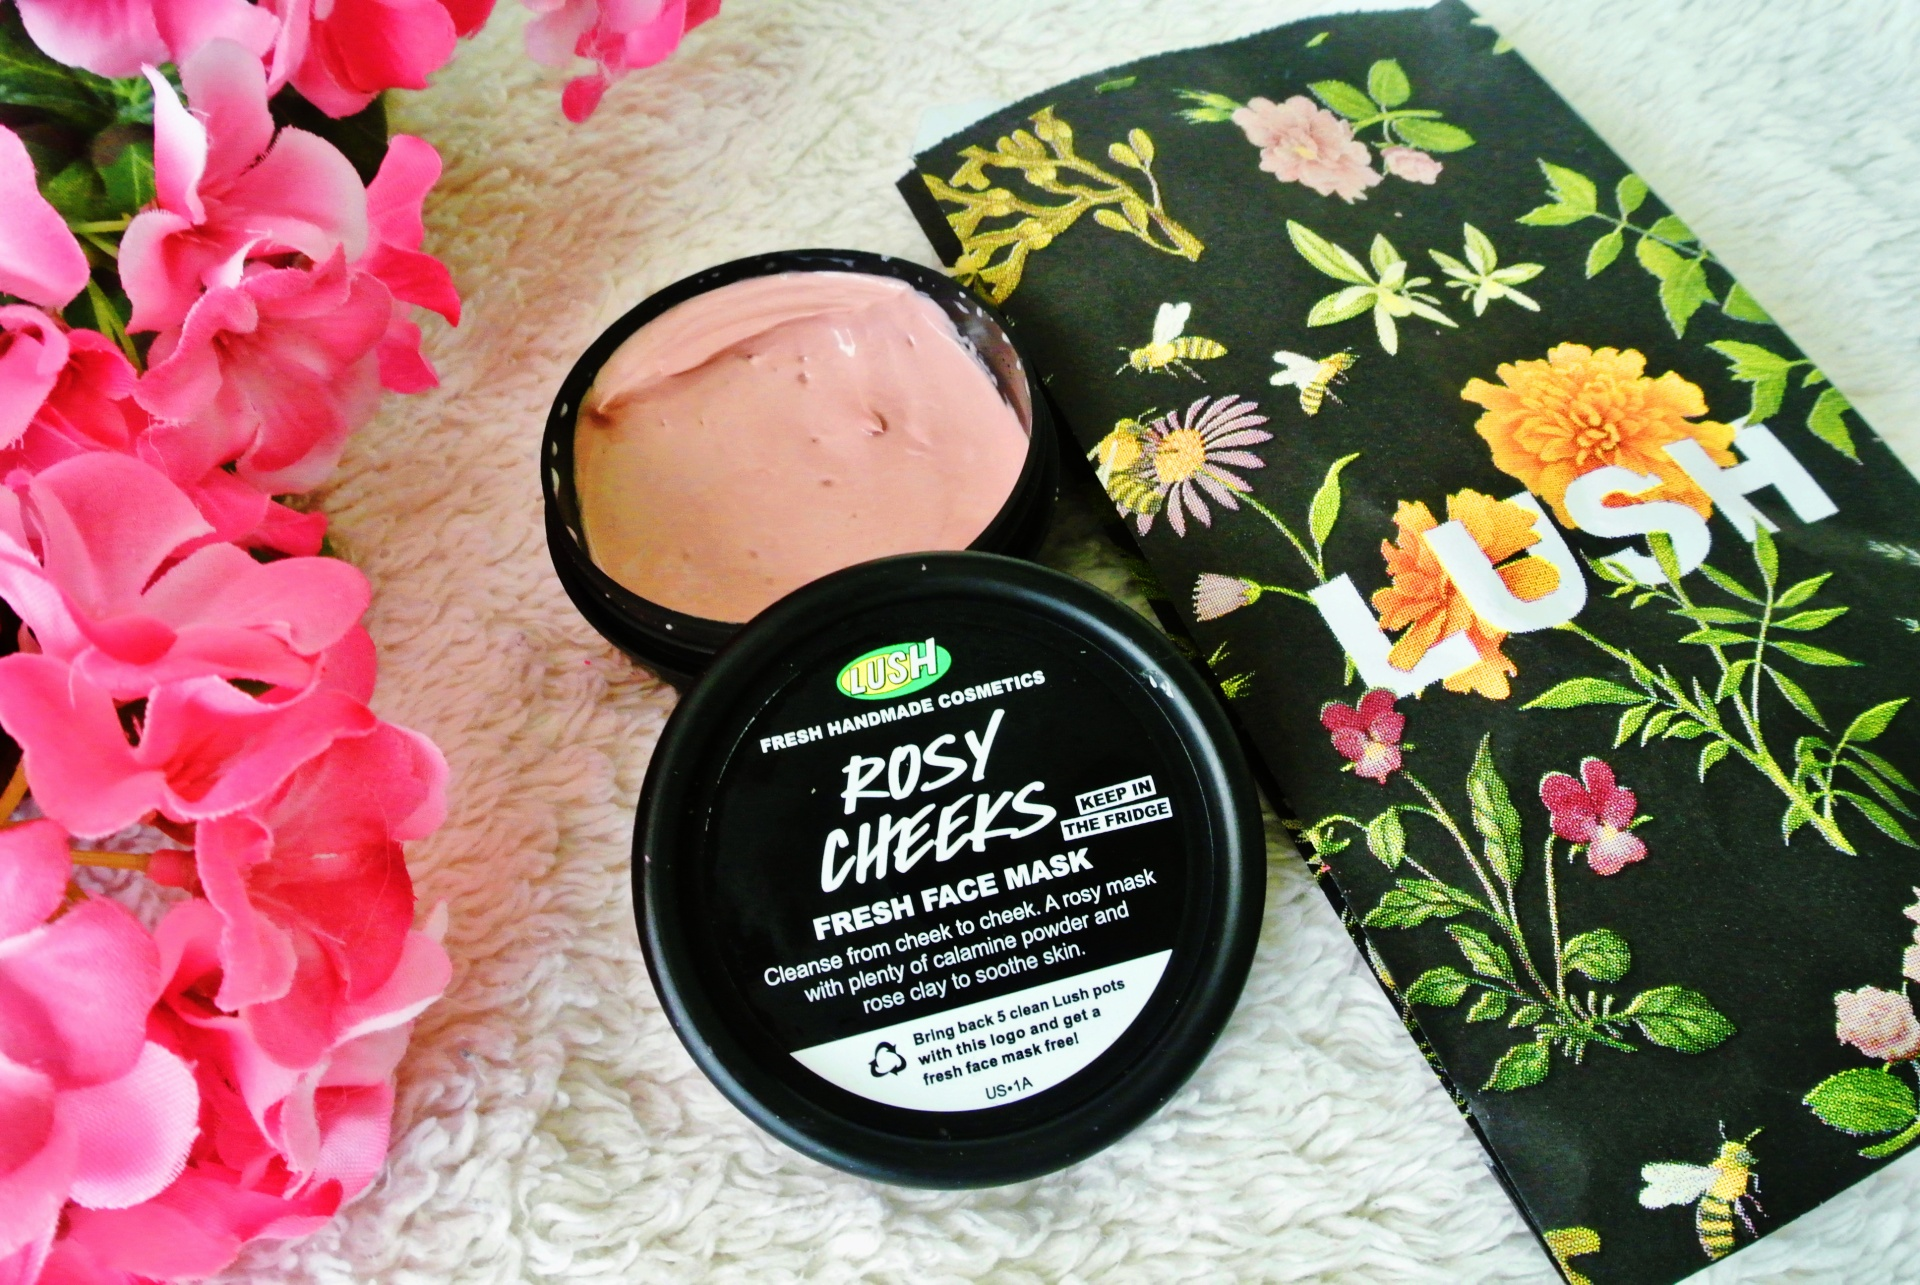 Lush Cosmetics Spring Mini-Haul // Rosy Cheeks fresh face mask